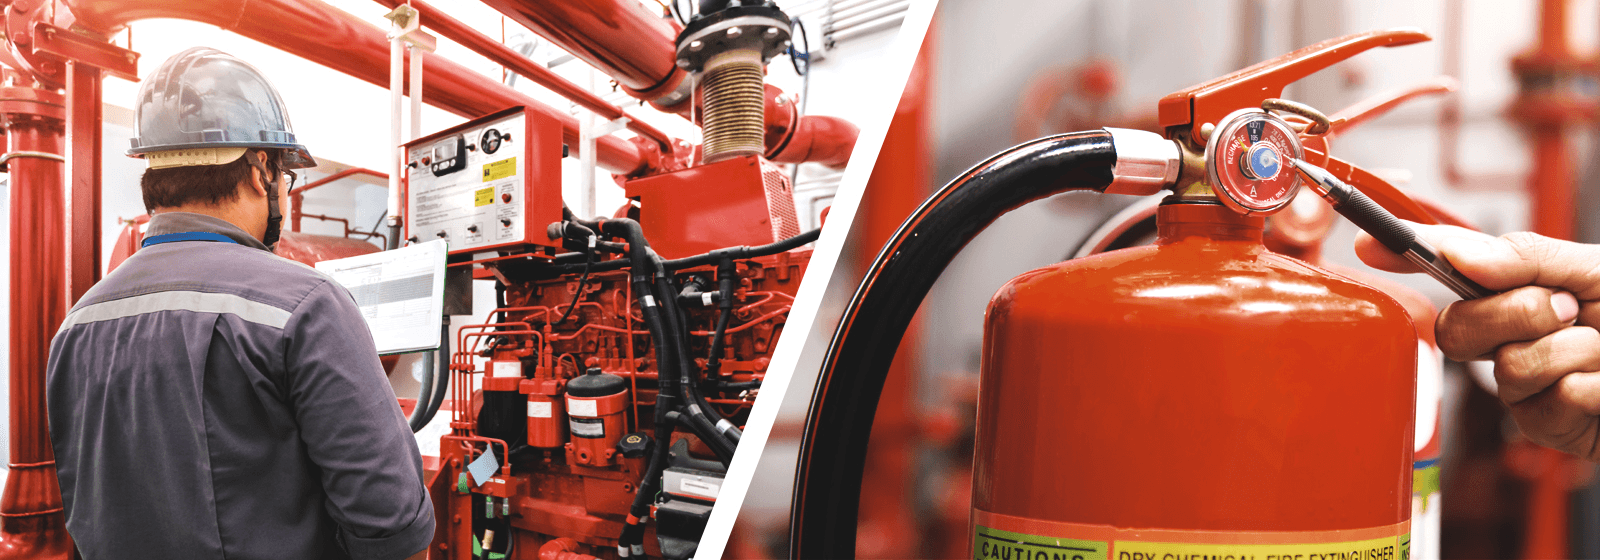 fire protection and services company for sale in bc